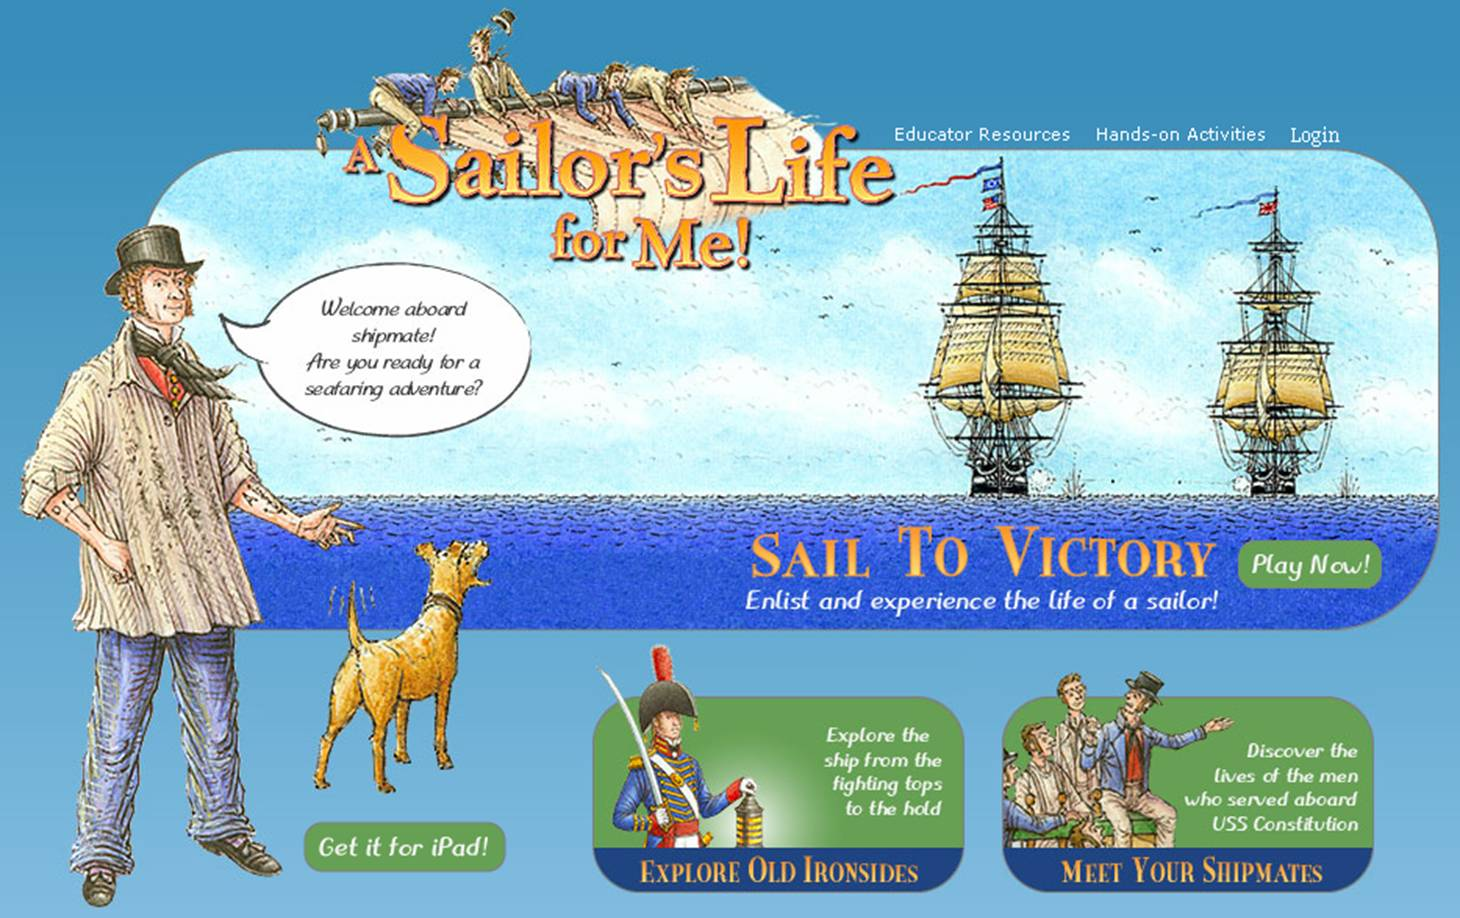 A Sailor's Life for Me